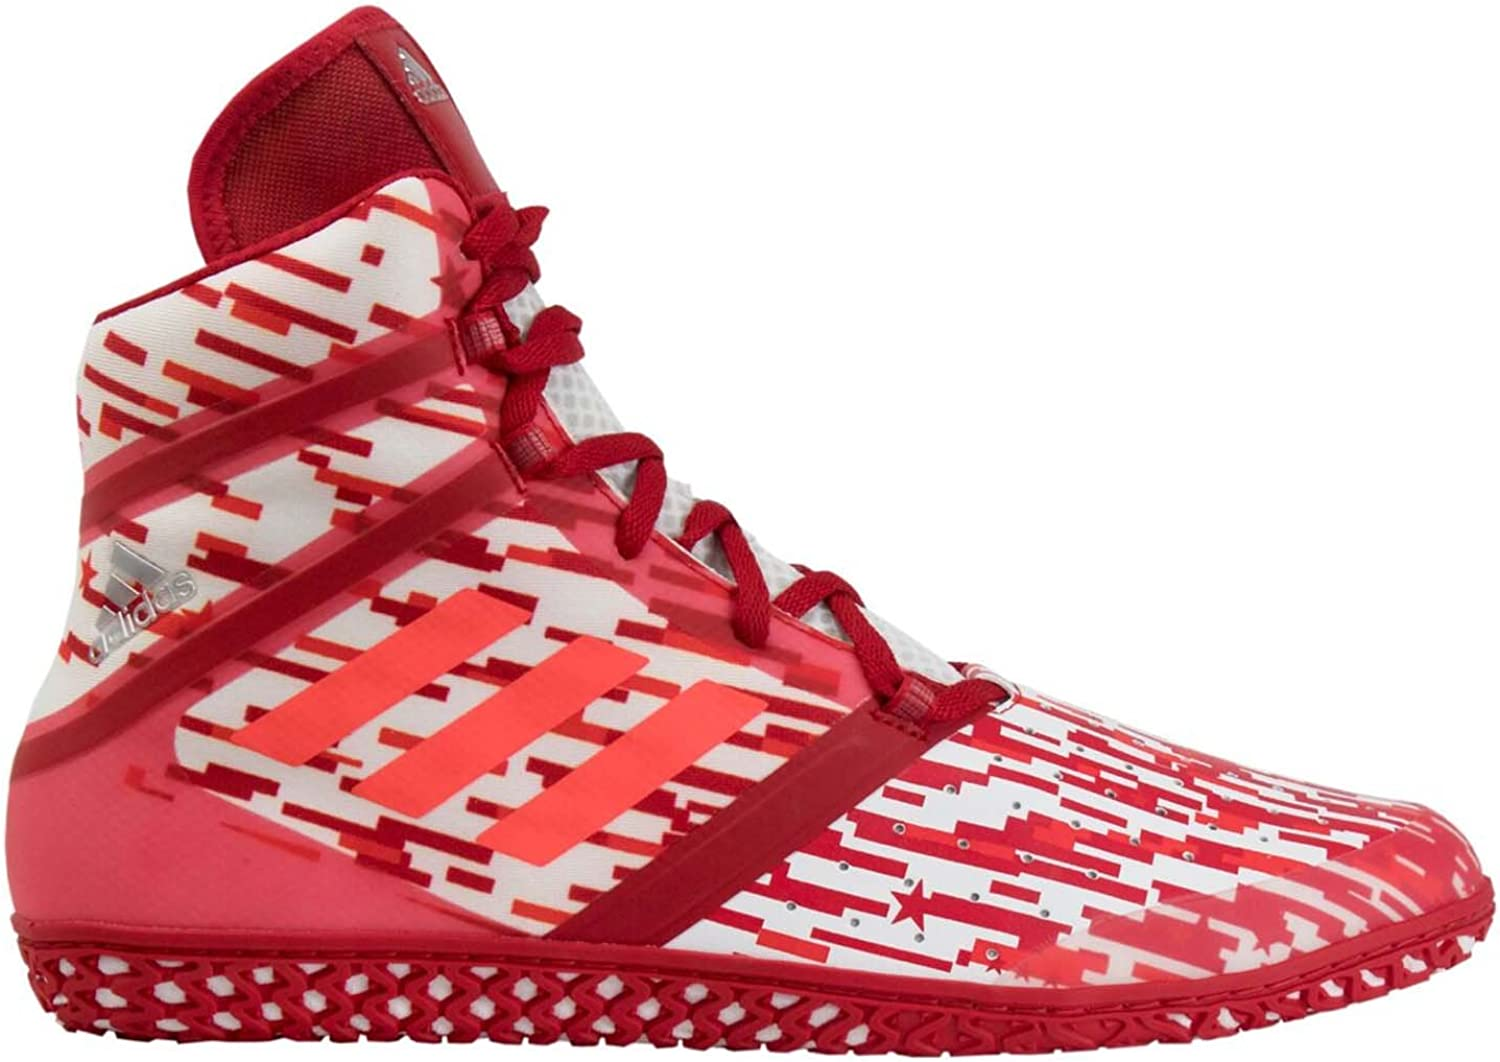 Adidas Impact Men's Wrestling shoes, Red Digital Print, Size 13